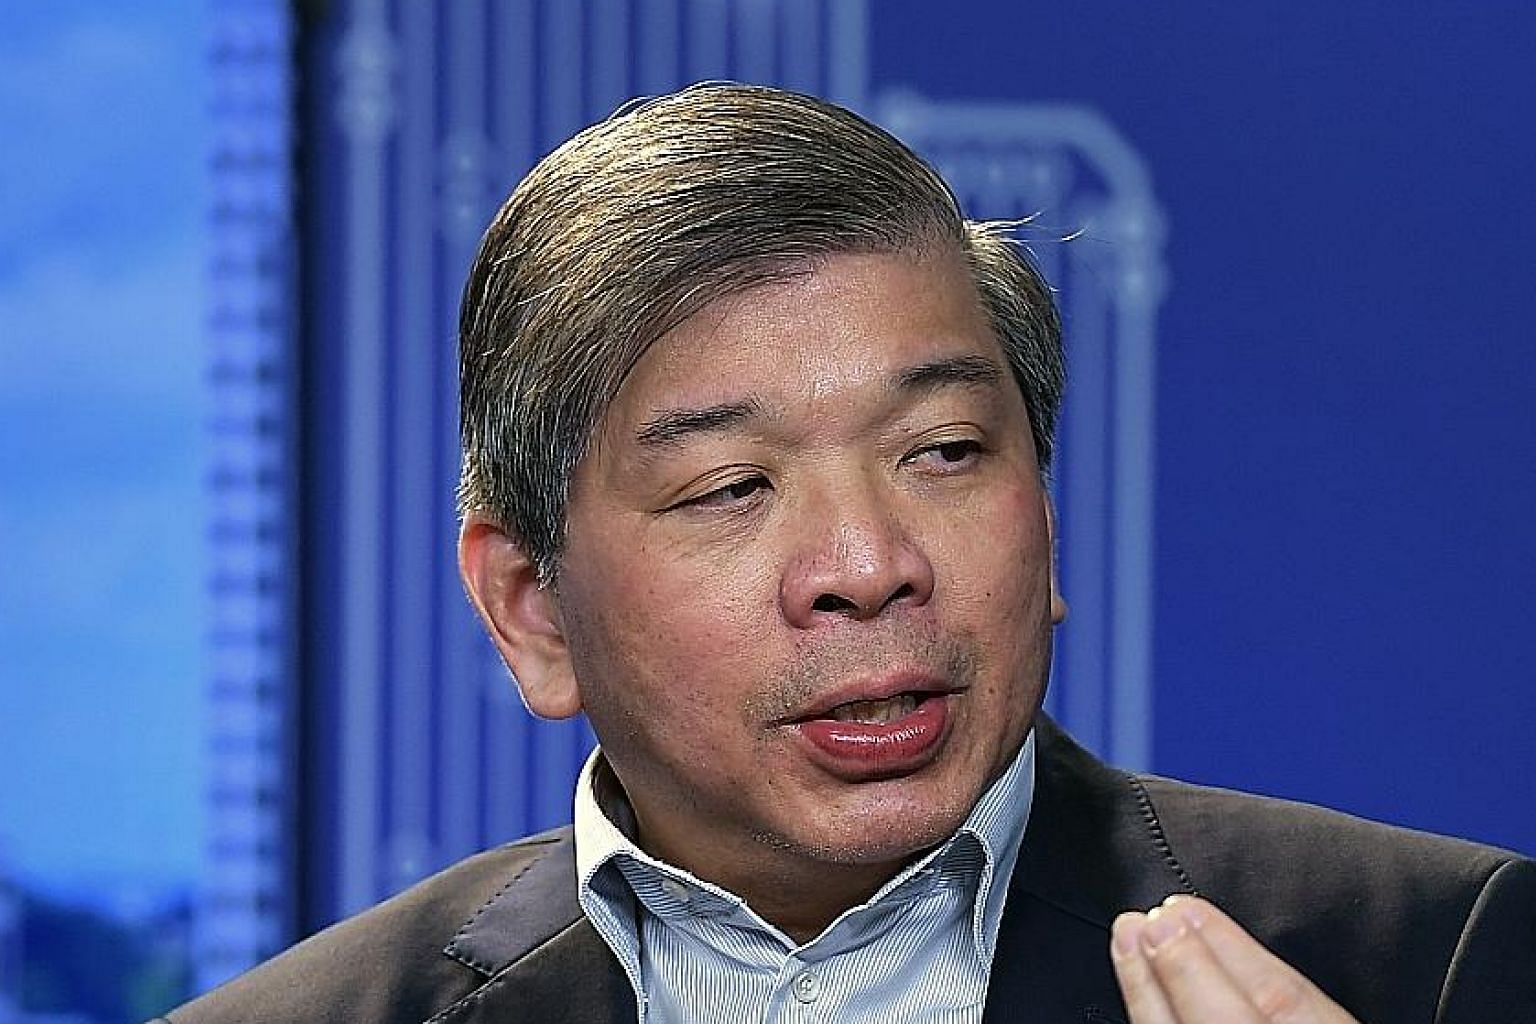 Mr Teo Siong Seng encourages Singaporeans to have a sense of community, camaraderie and the kampung spirit to help one another. ST FILE PHOTO